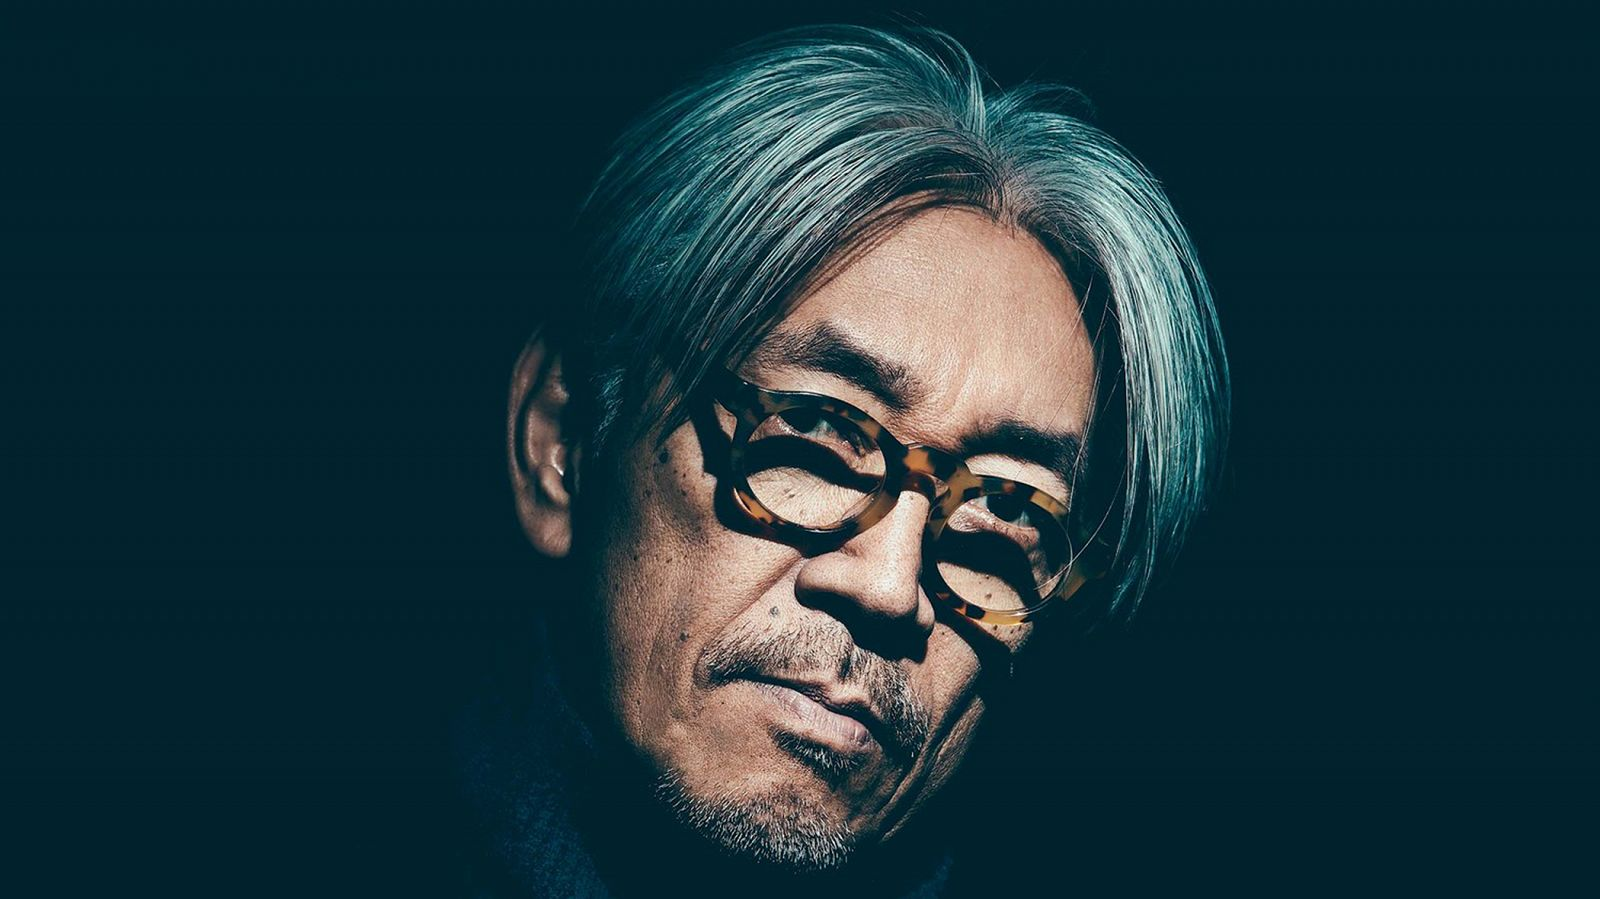 https://www.nts.live/shows/guests/episodes/ryuichi-sakamoto-22nd-september-2017